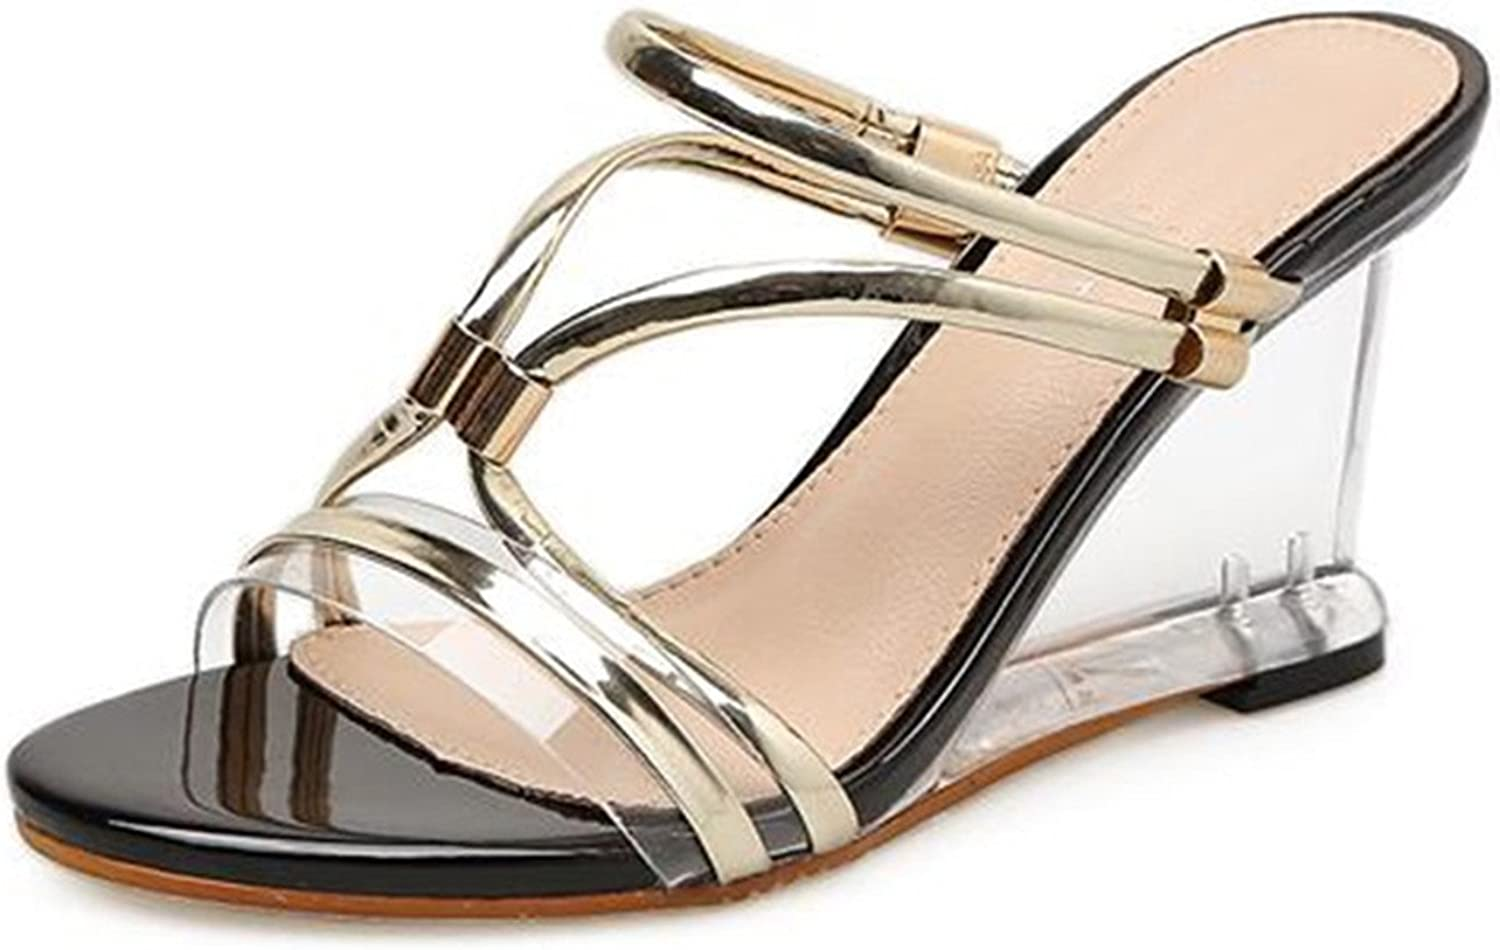 Gladiator Sandals Women Clear Heels Wedge Sandals Sexy Crystal Transparent Heel shoes Vogue Summer Ladies shoes 8.5cm